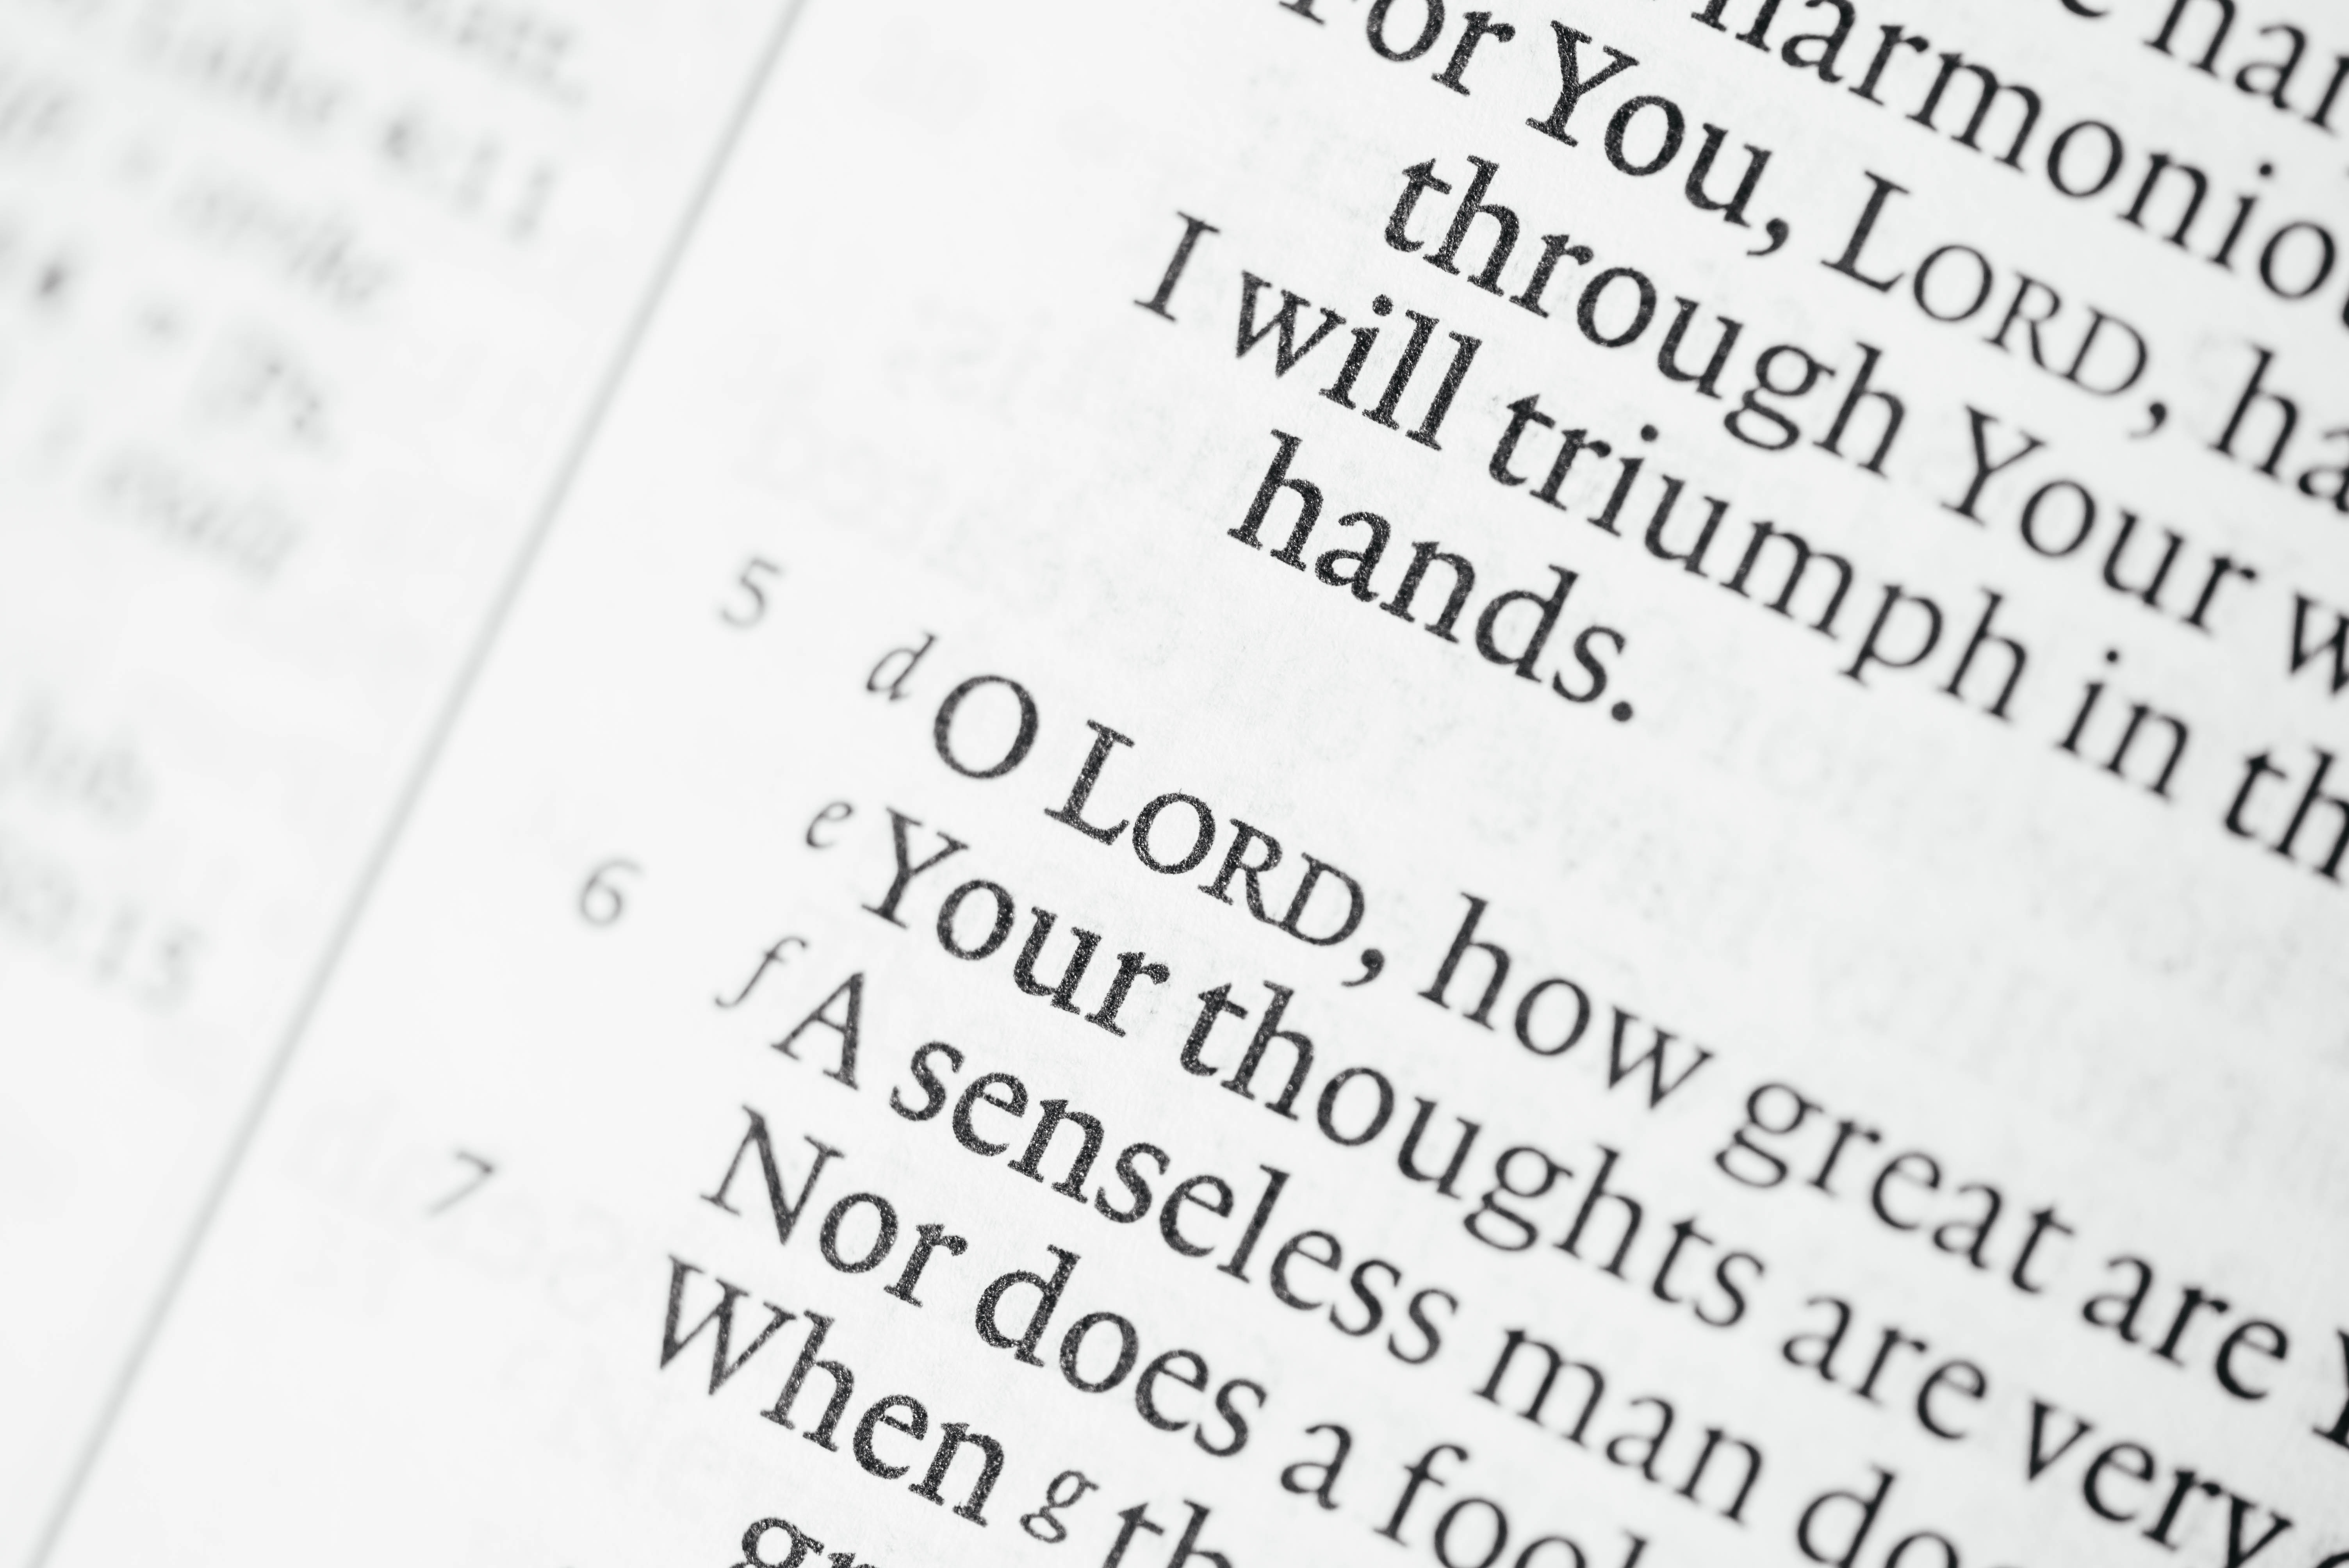 An excerpt of Psalms 92:5, part of the Bible.